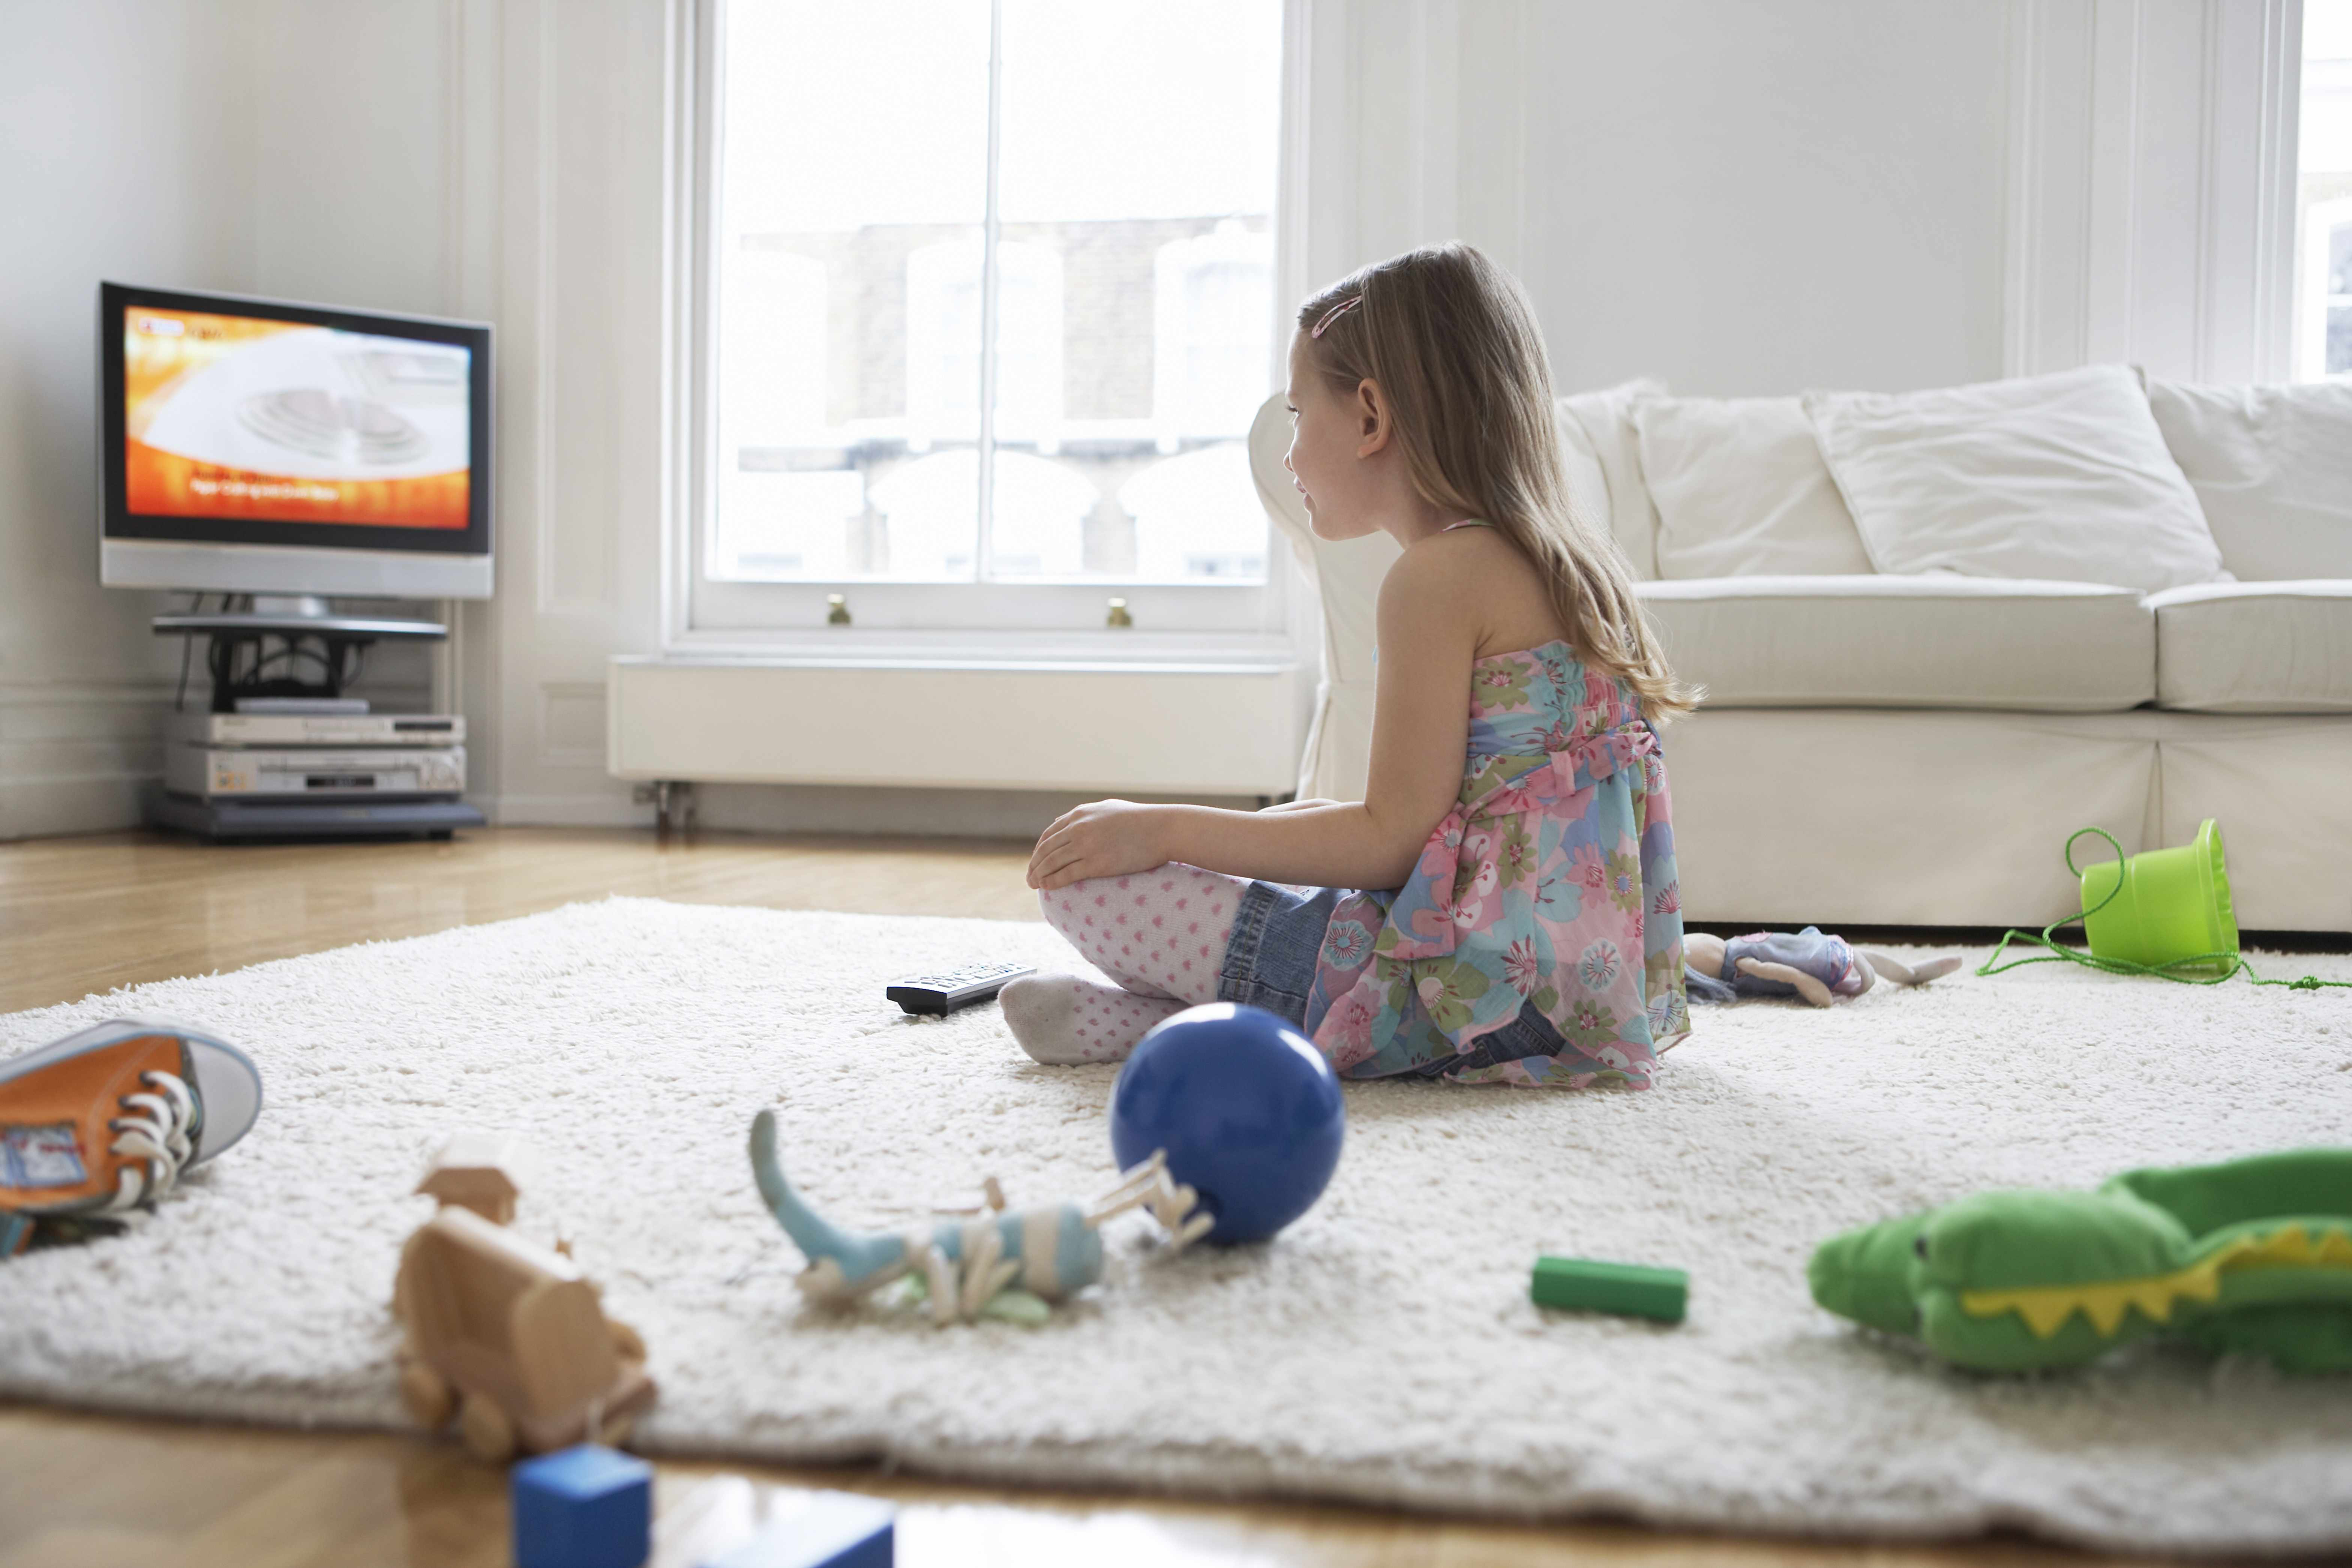 little girl staring at television screen, monitor